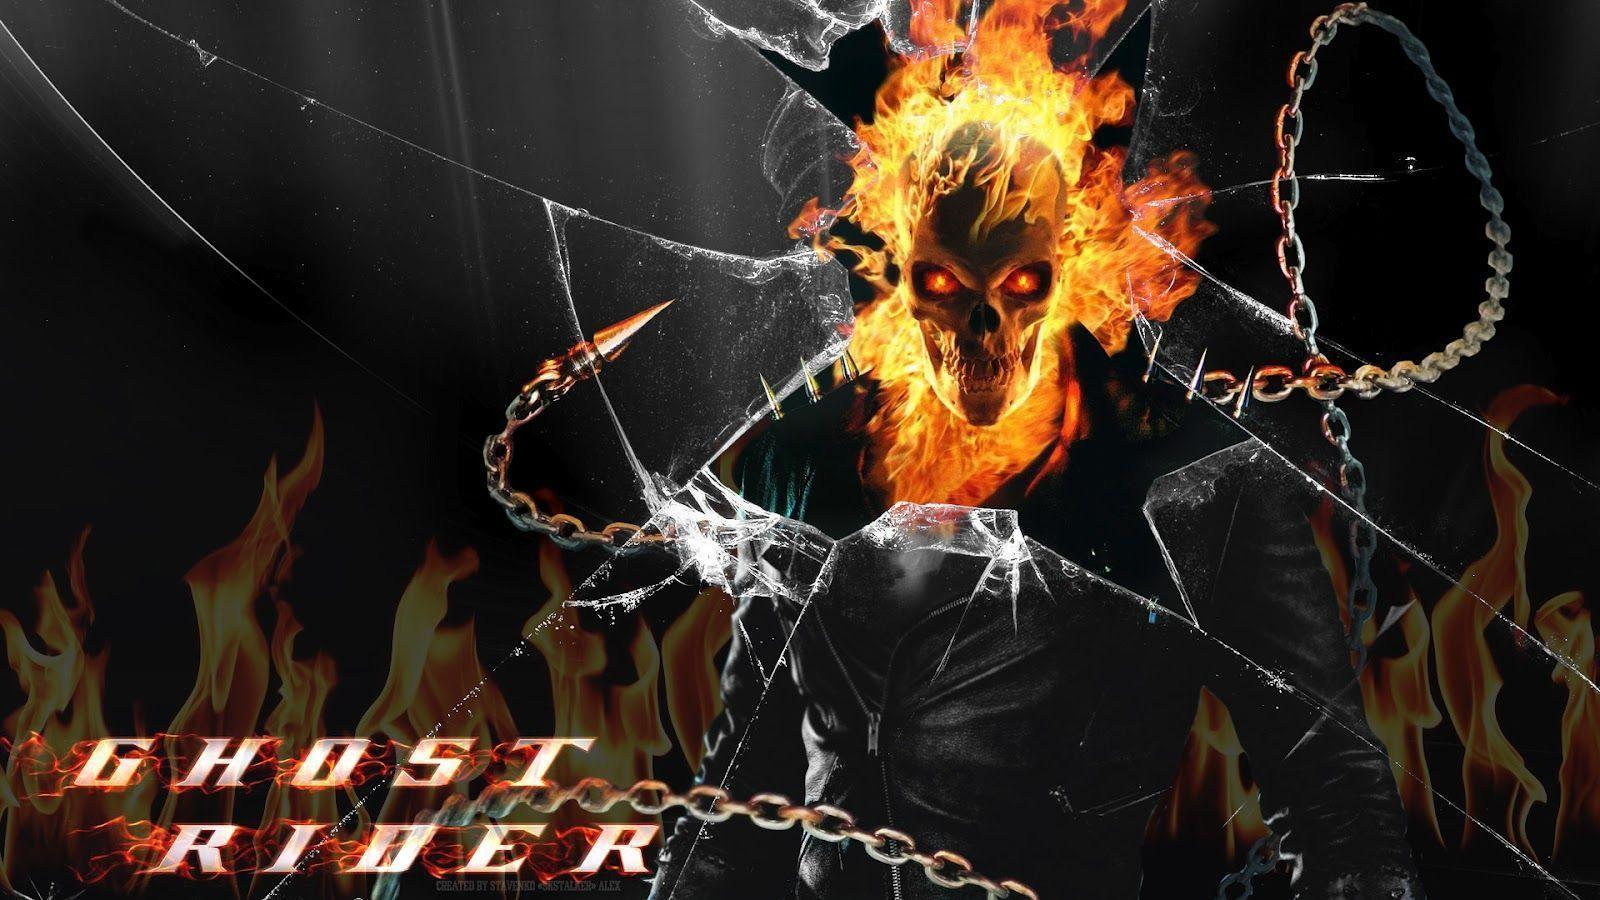 Ghost Rider Wallpapers 2017 Wallpaper Cave